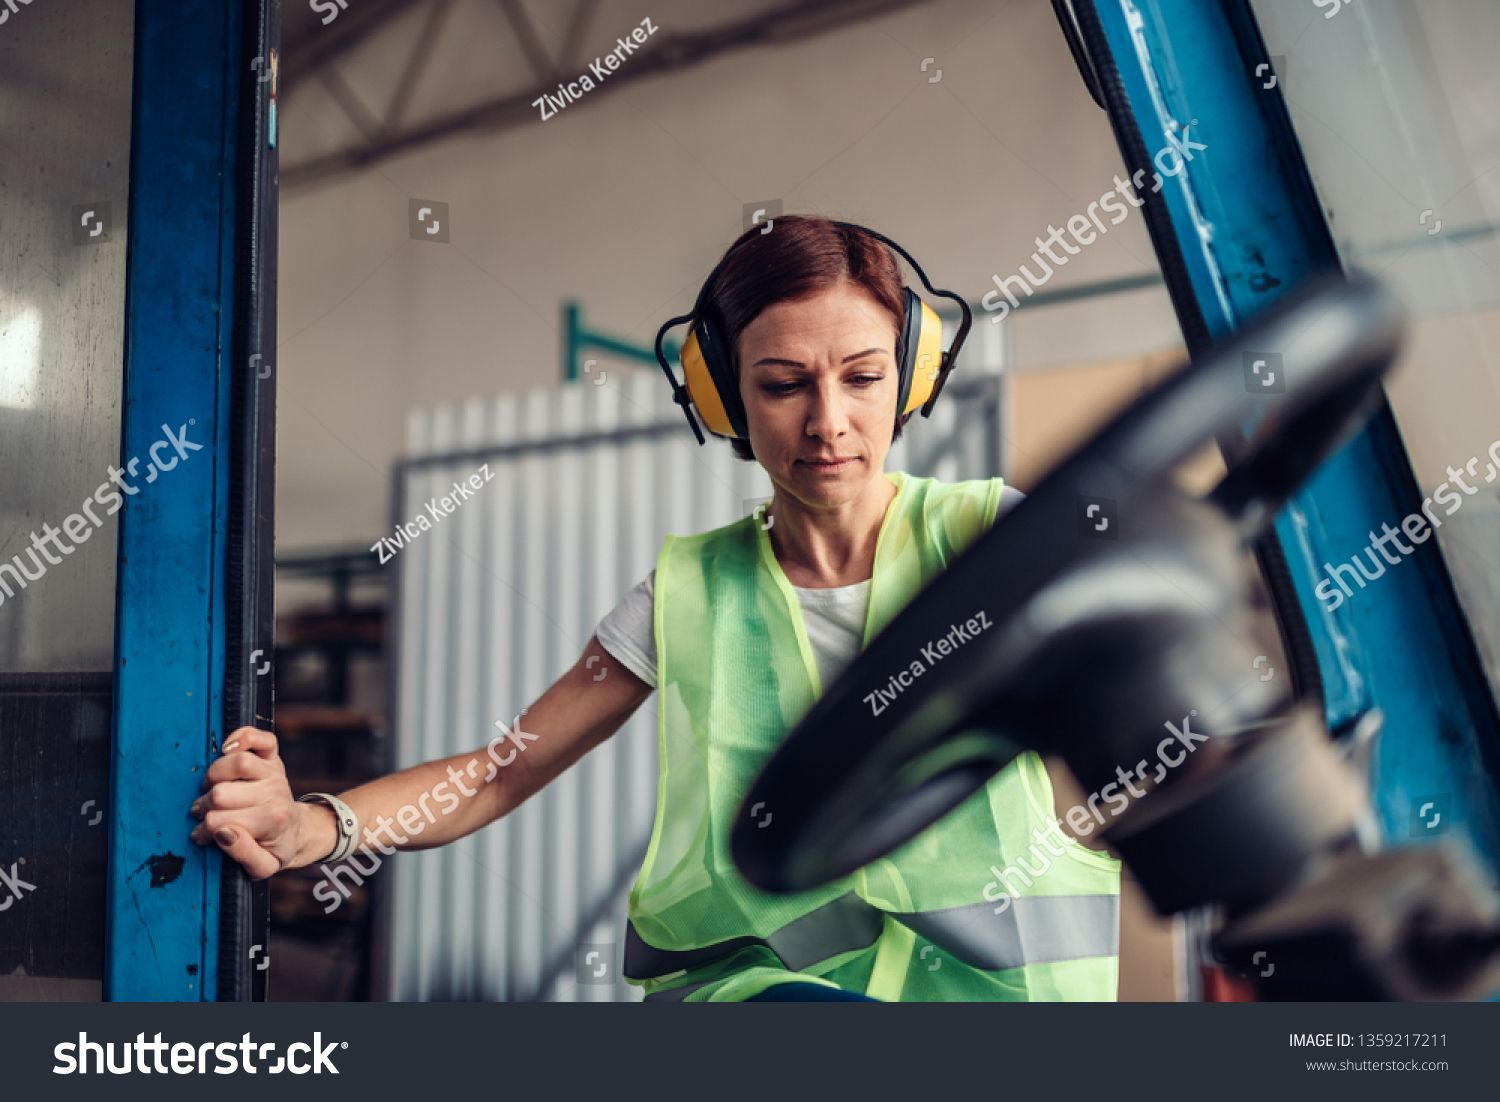 Woman forklift operator at industrial factory entering